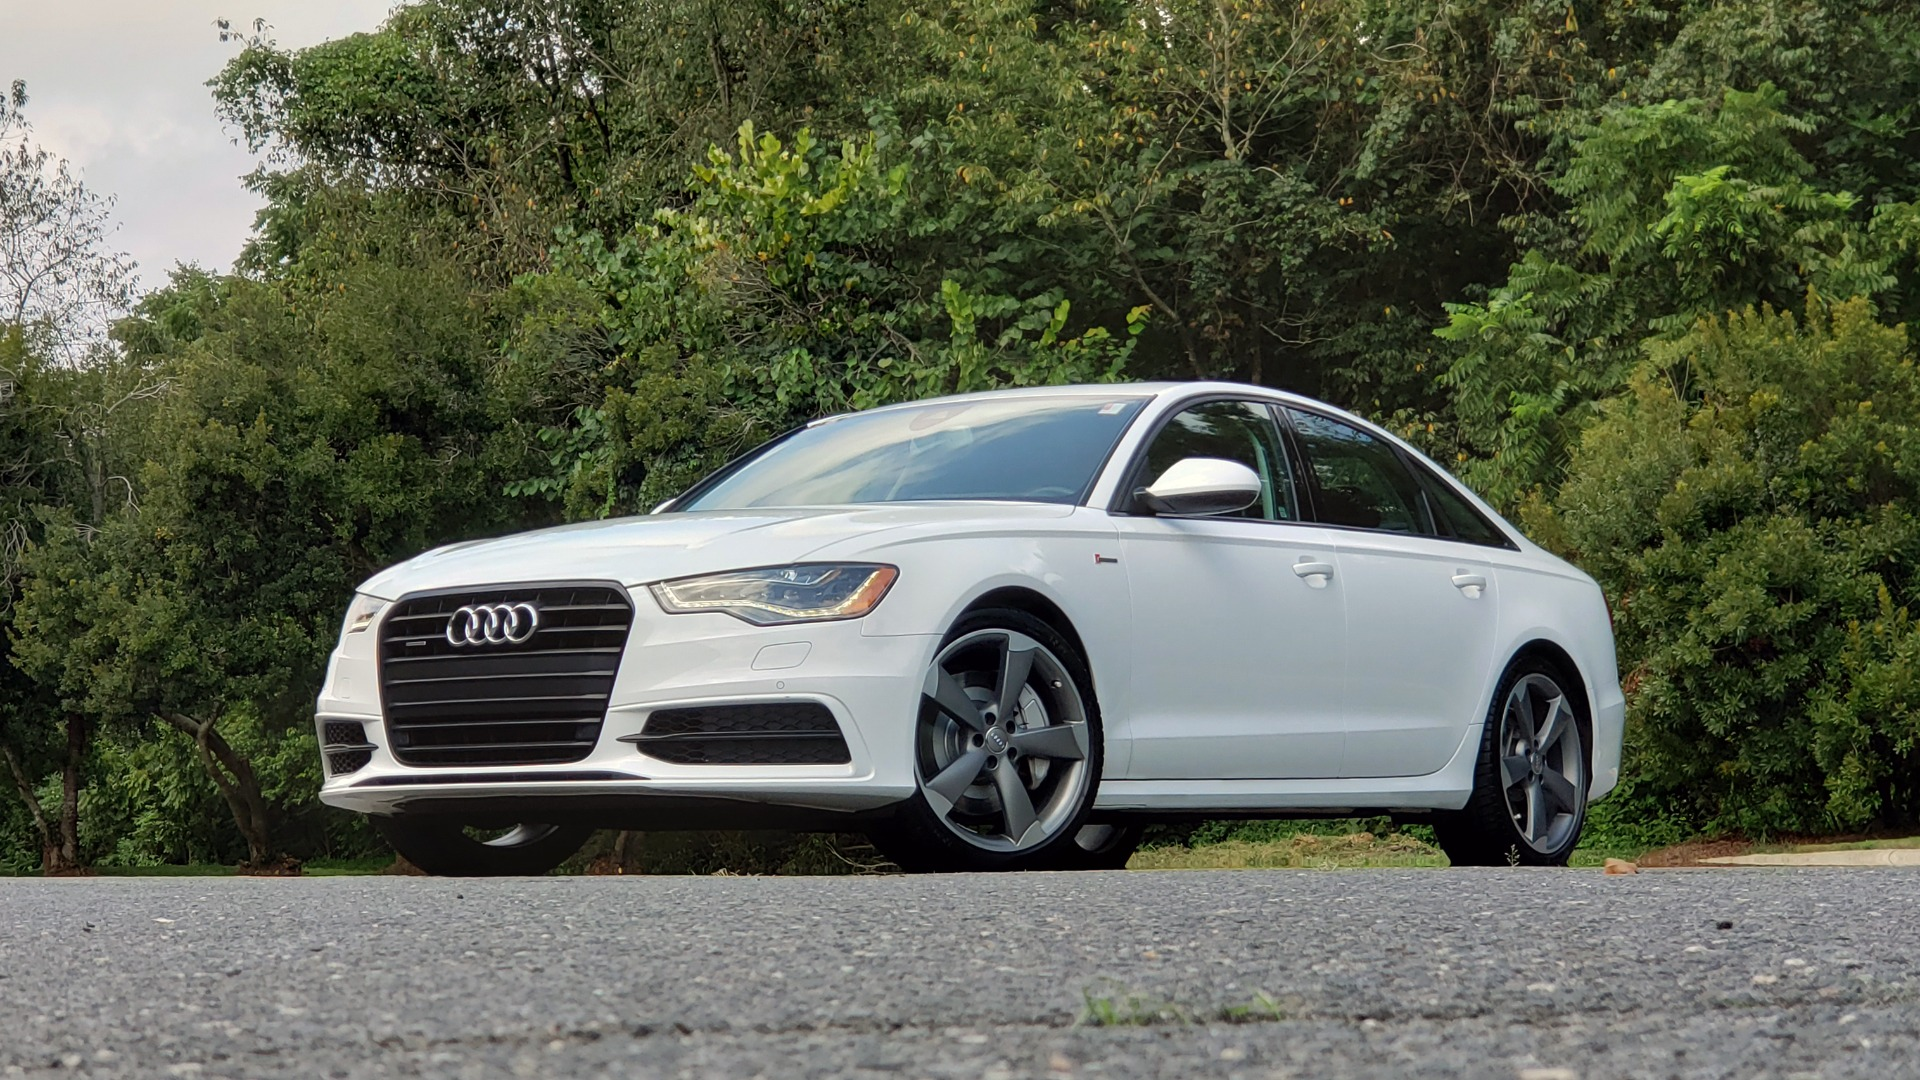 Used 2015 Audi A6 3.0T PRESTIGE / BLACK OPTIC / NAV / BOSE / SUNROOF / REARVIEW for sale Sold at Formula Imports in Charlotte NC 28227 2